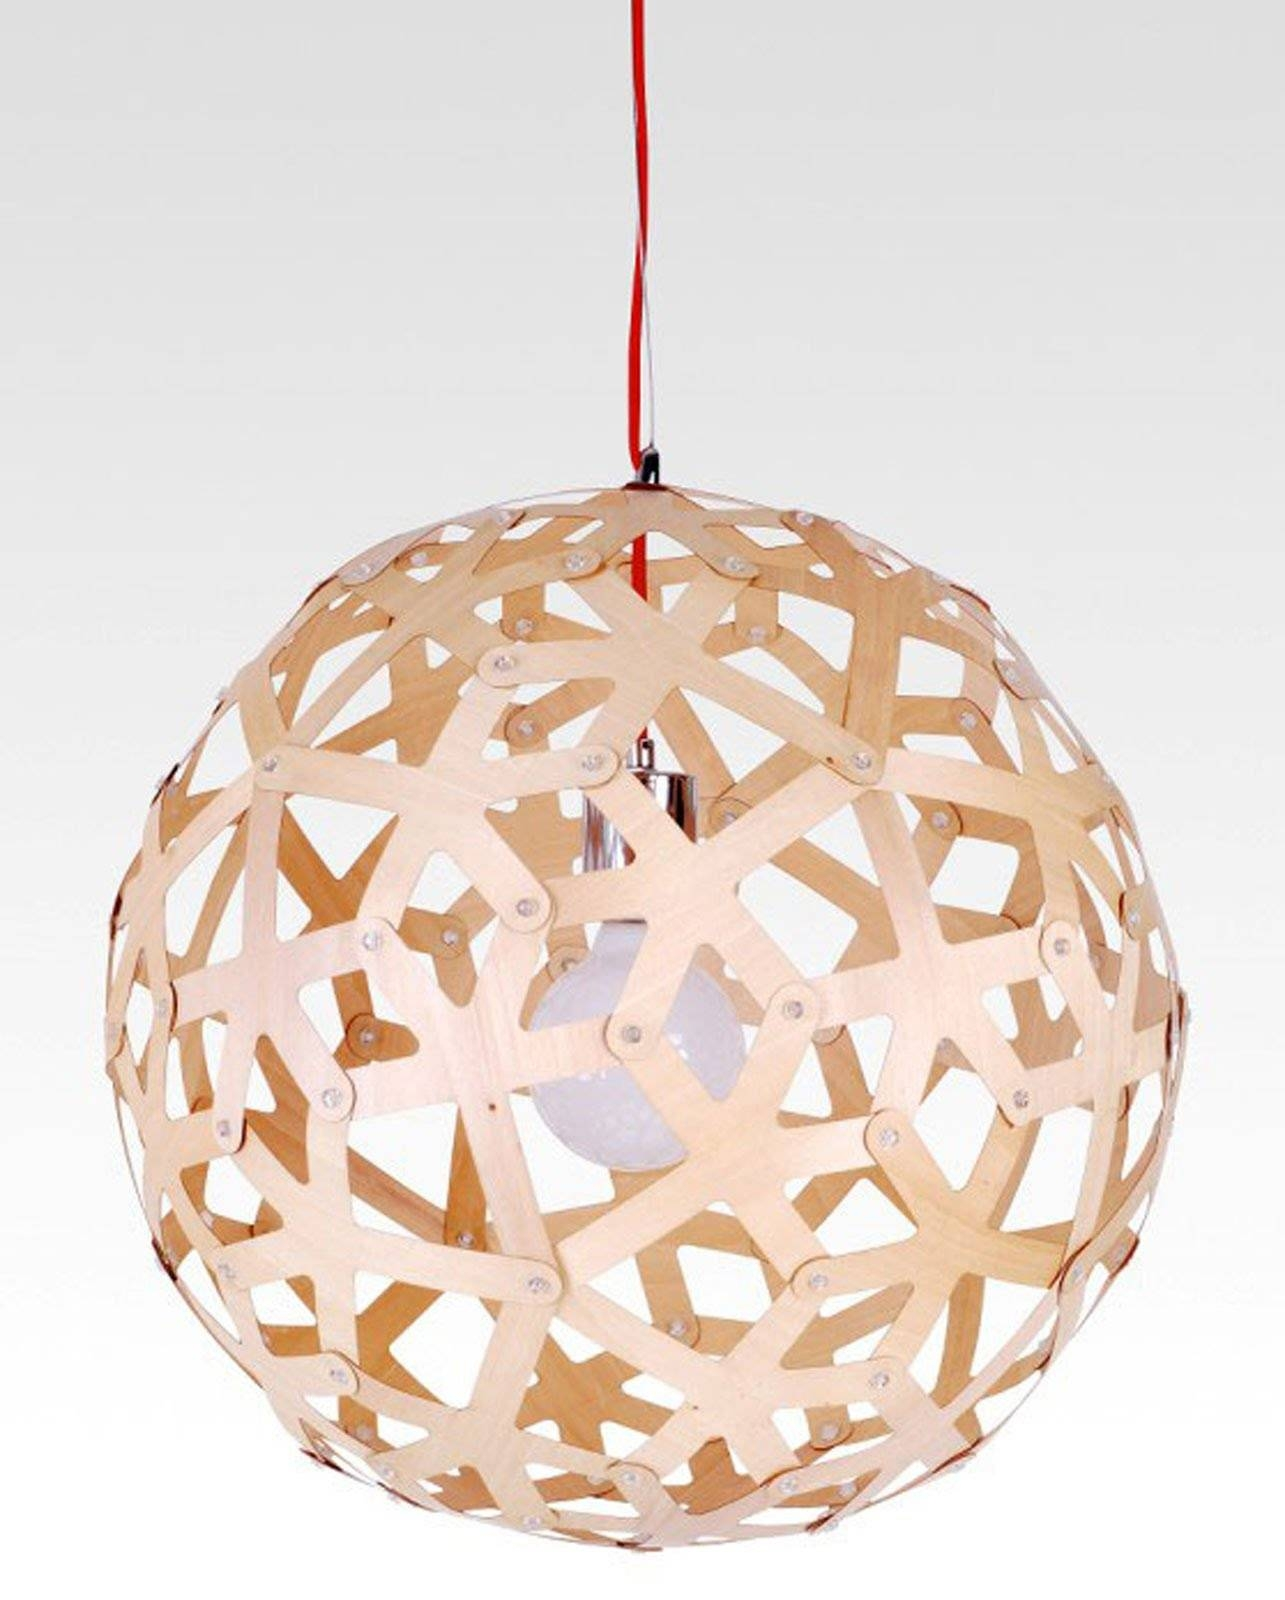 Buy Wood Pendant Light In Melbourne [Sphere] - Youtube within Pendant Lights Melbourne (Image 5 of 15)